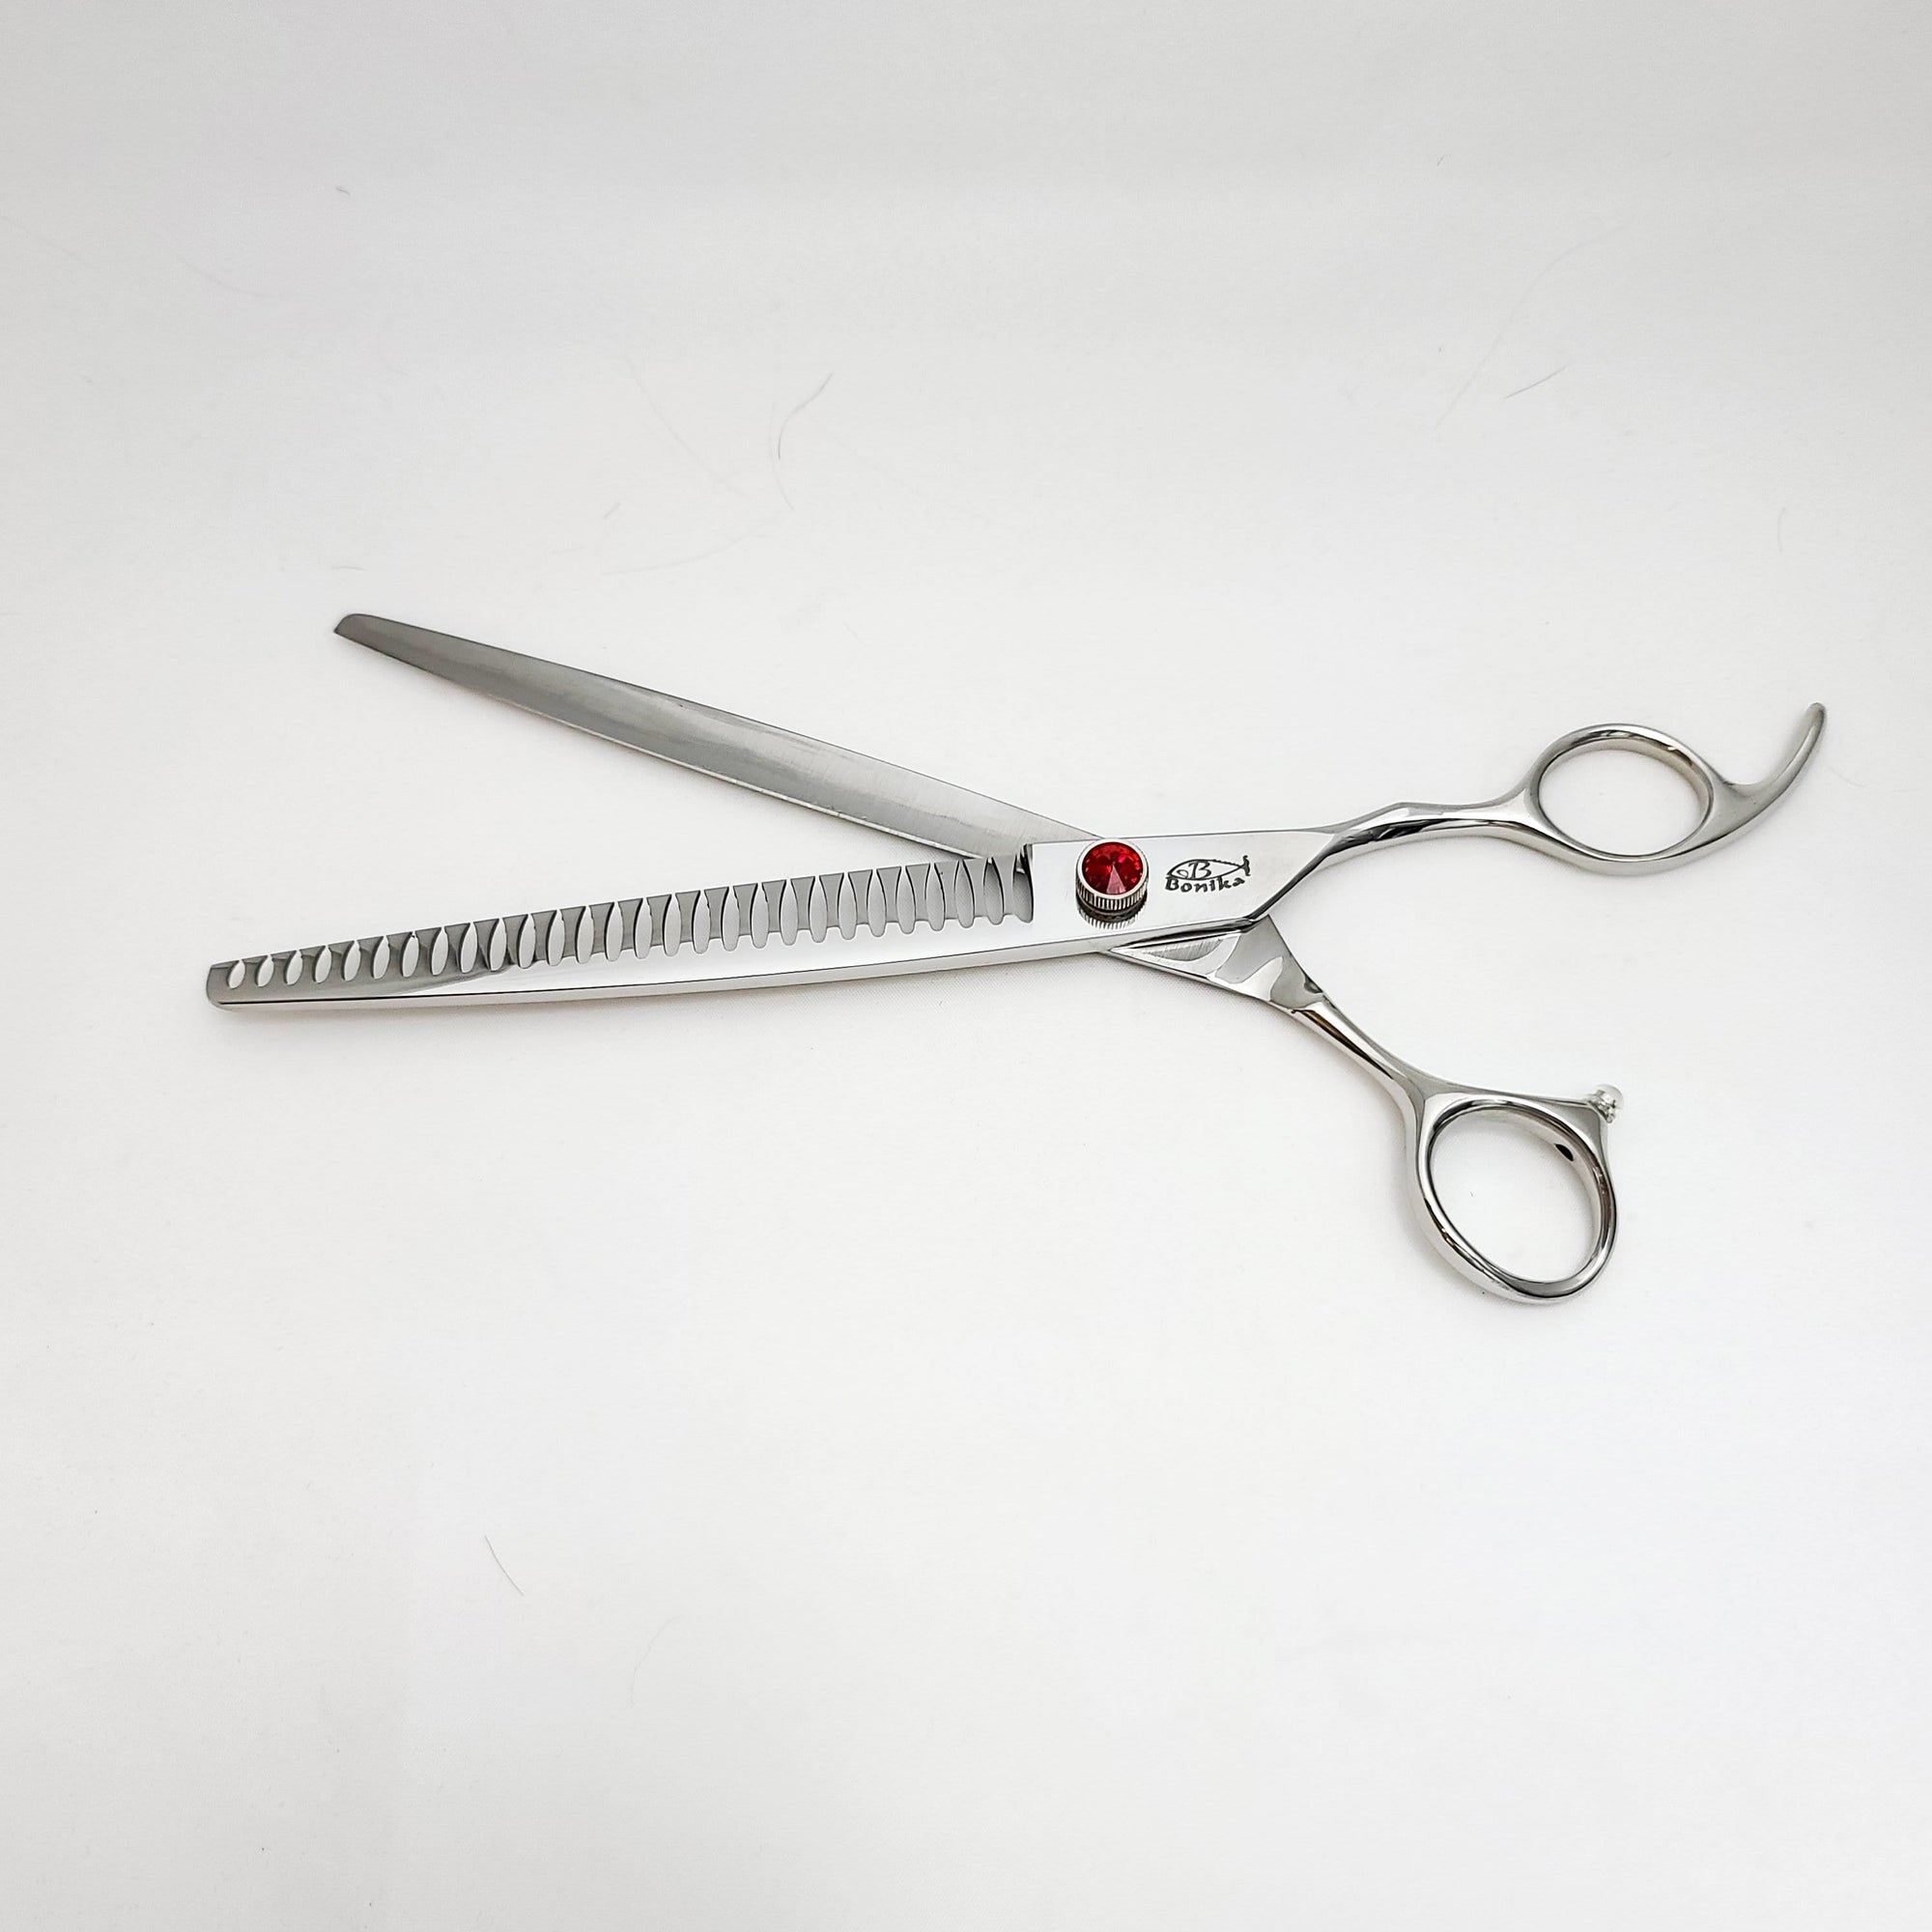 "Big Red 8"" Texturizer Shear"